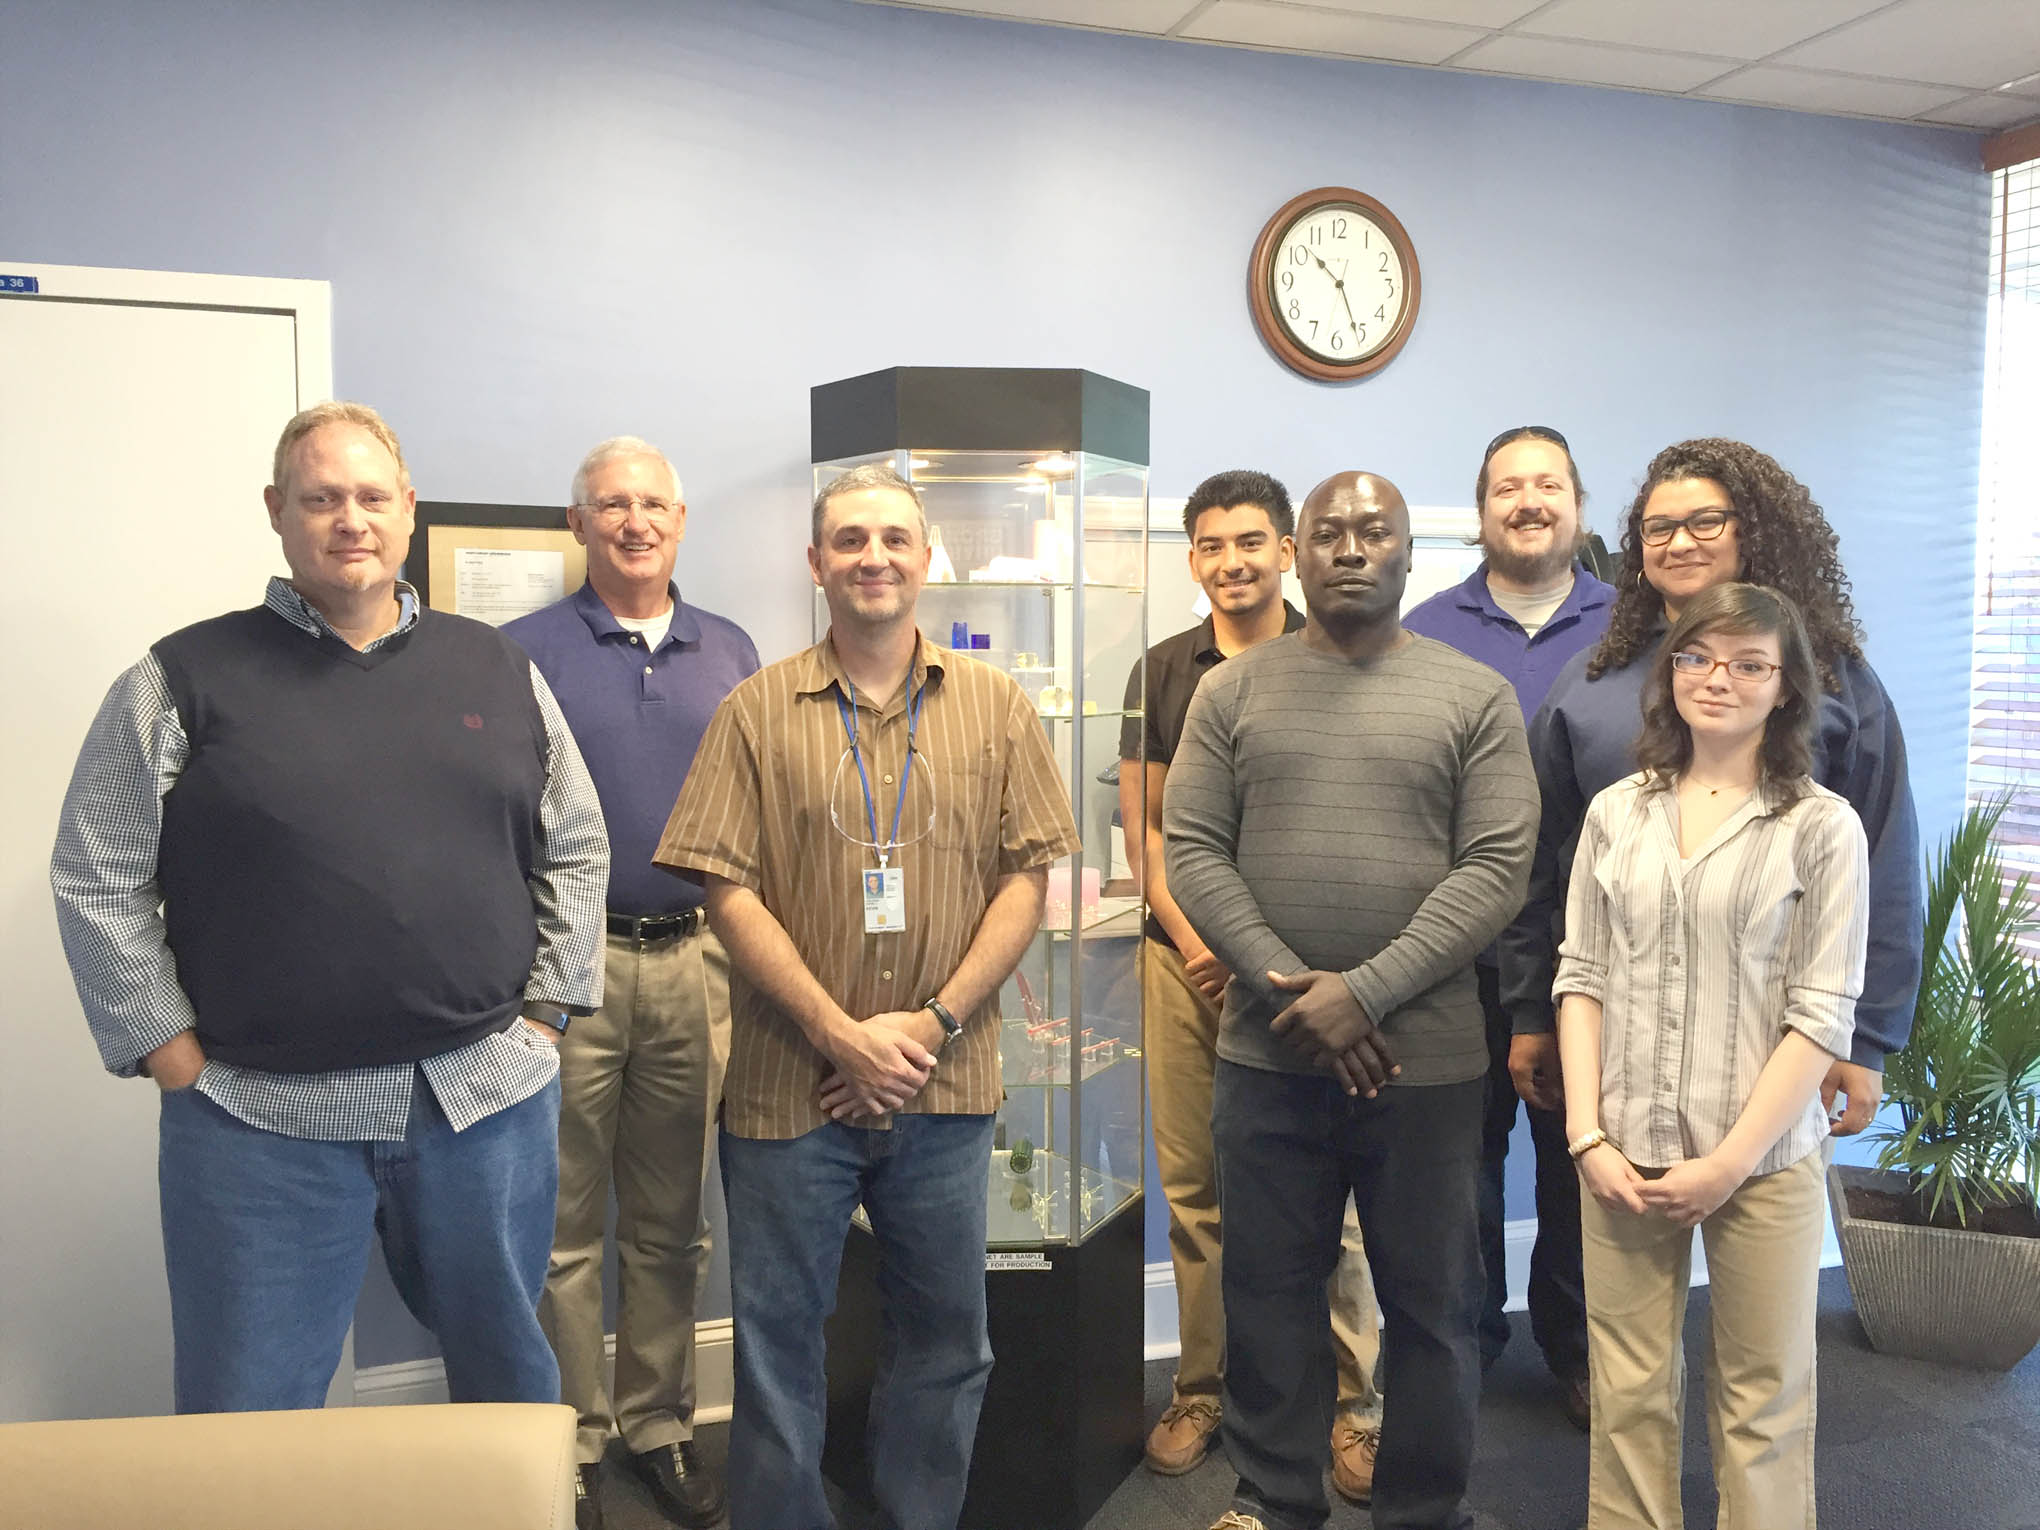 Click to enlarge,  Touring Synoptics, a division of Northrop Grumman, were, left to right: Scott Parker, Gary Beasley, Dr. Kevin Stevens, Antonio DePaz, Christopher Barnes, Cameron Childress, Kyla Ross, and Ruth Gietzen.